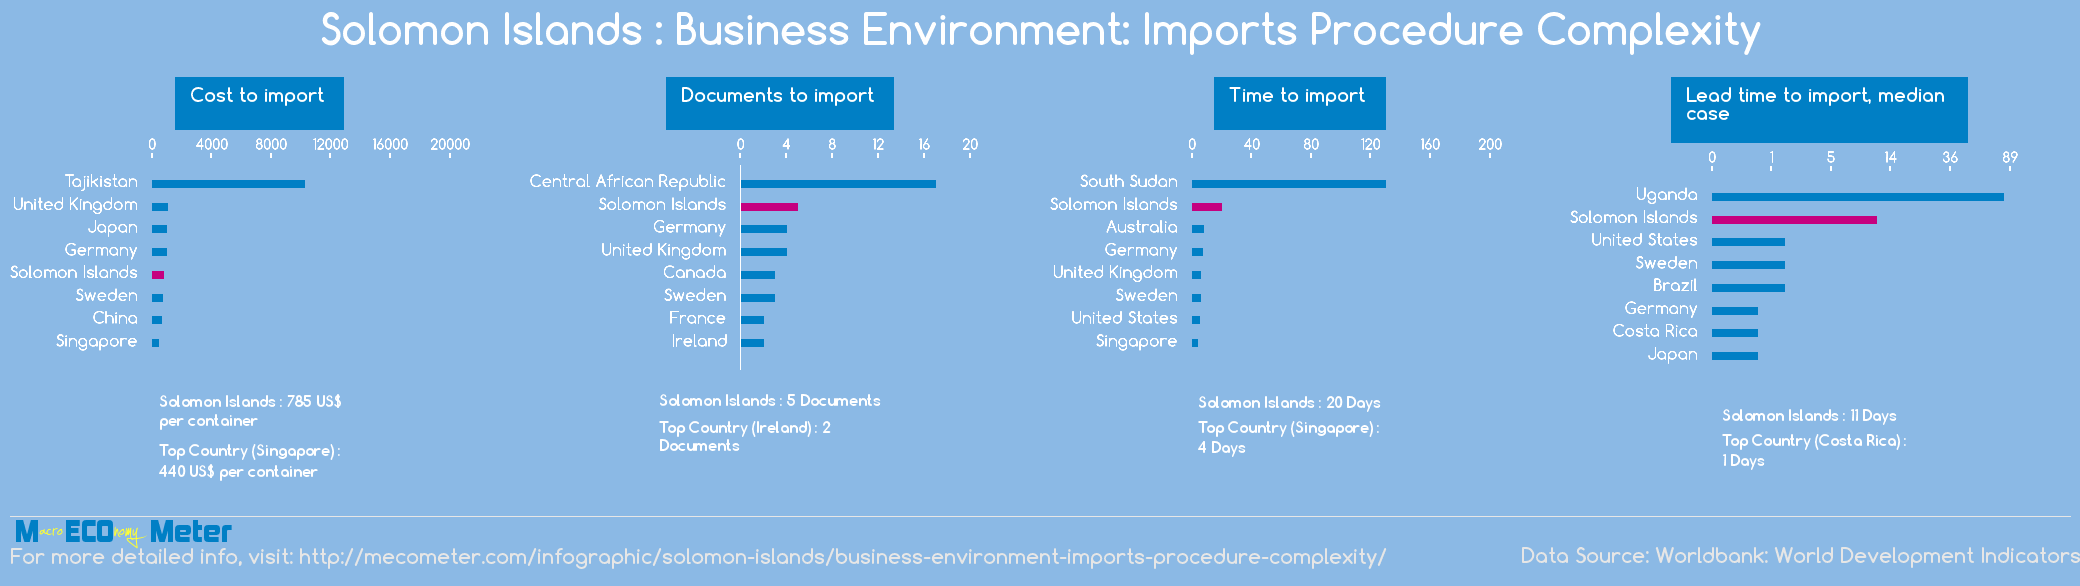 Solomon Islands : Business Environment: Imports Procedure Complexity